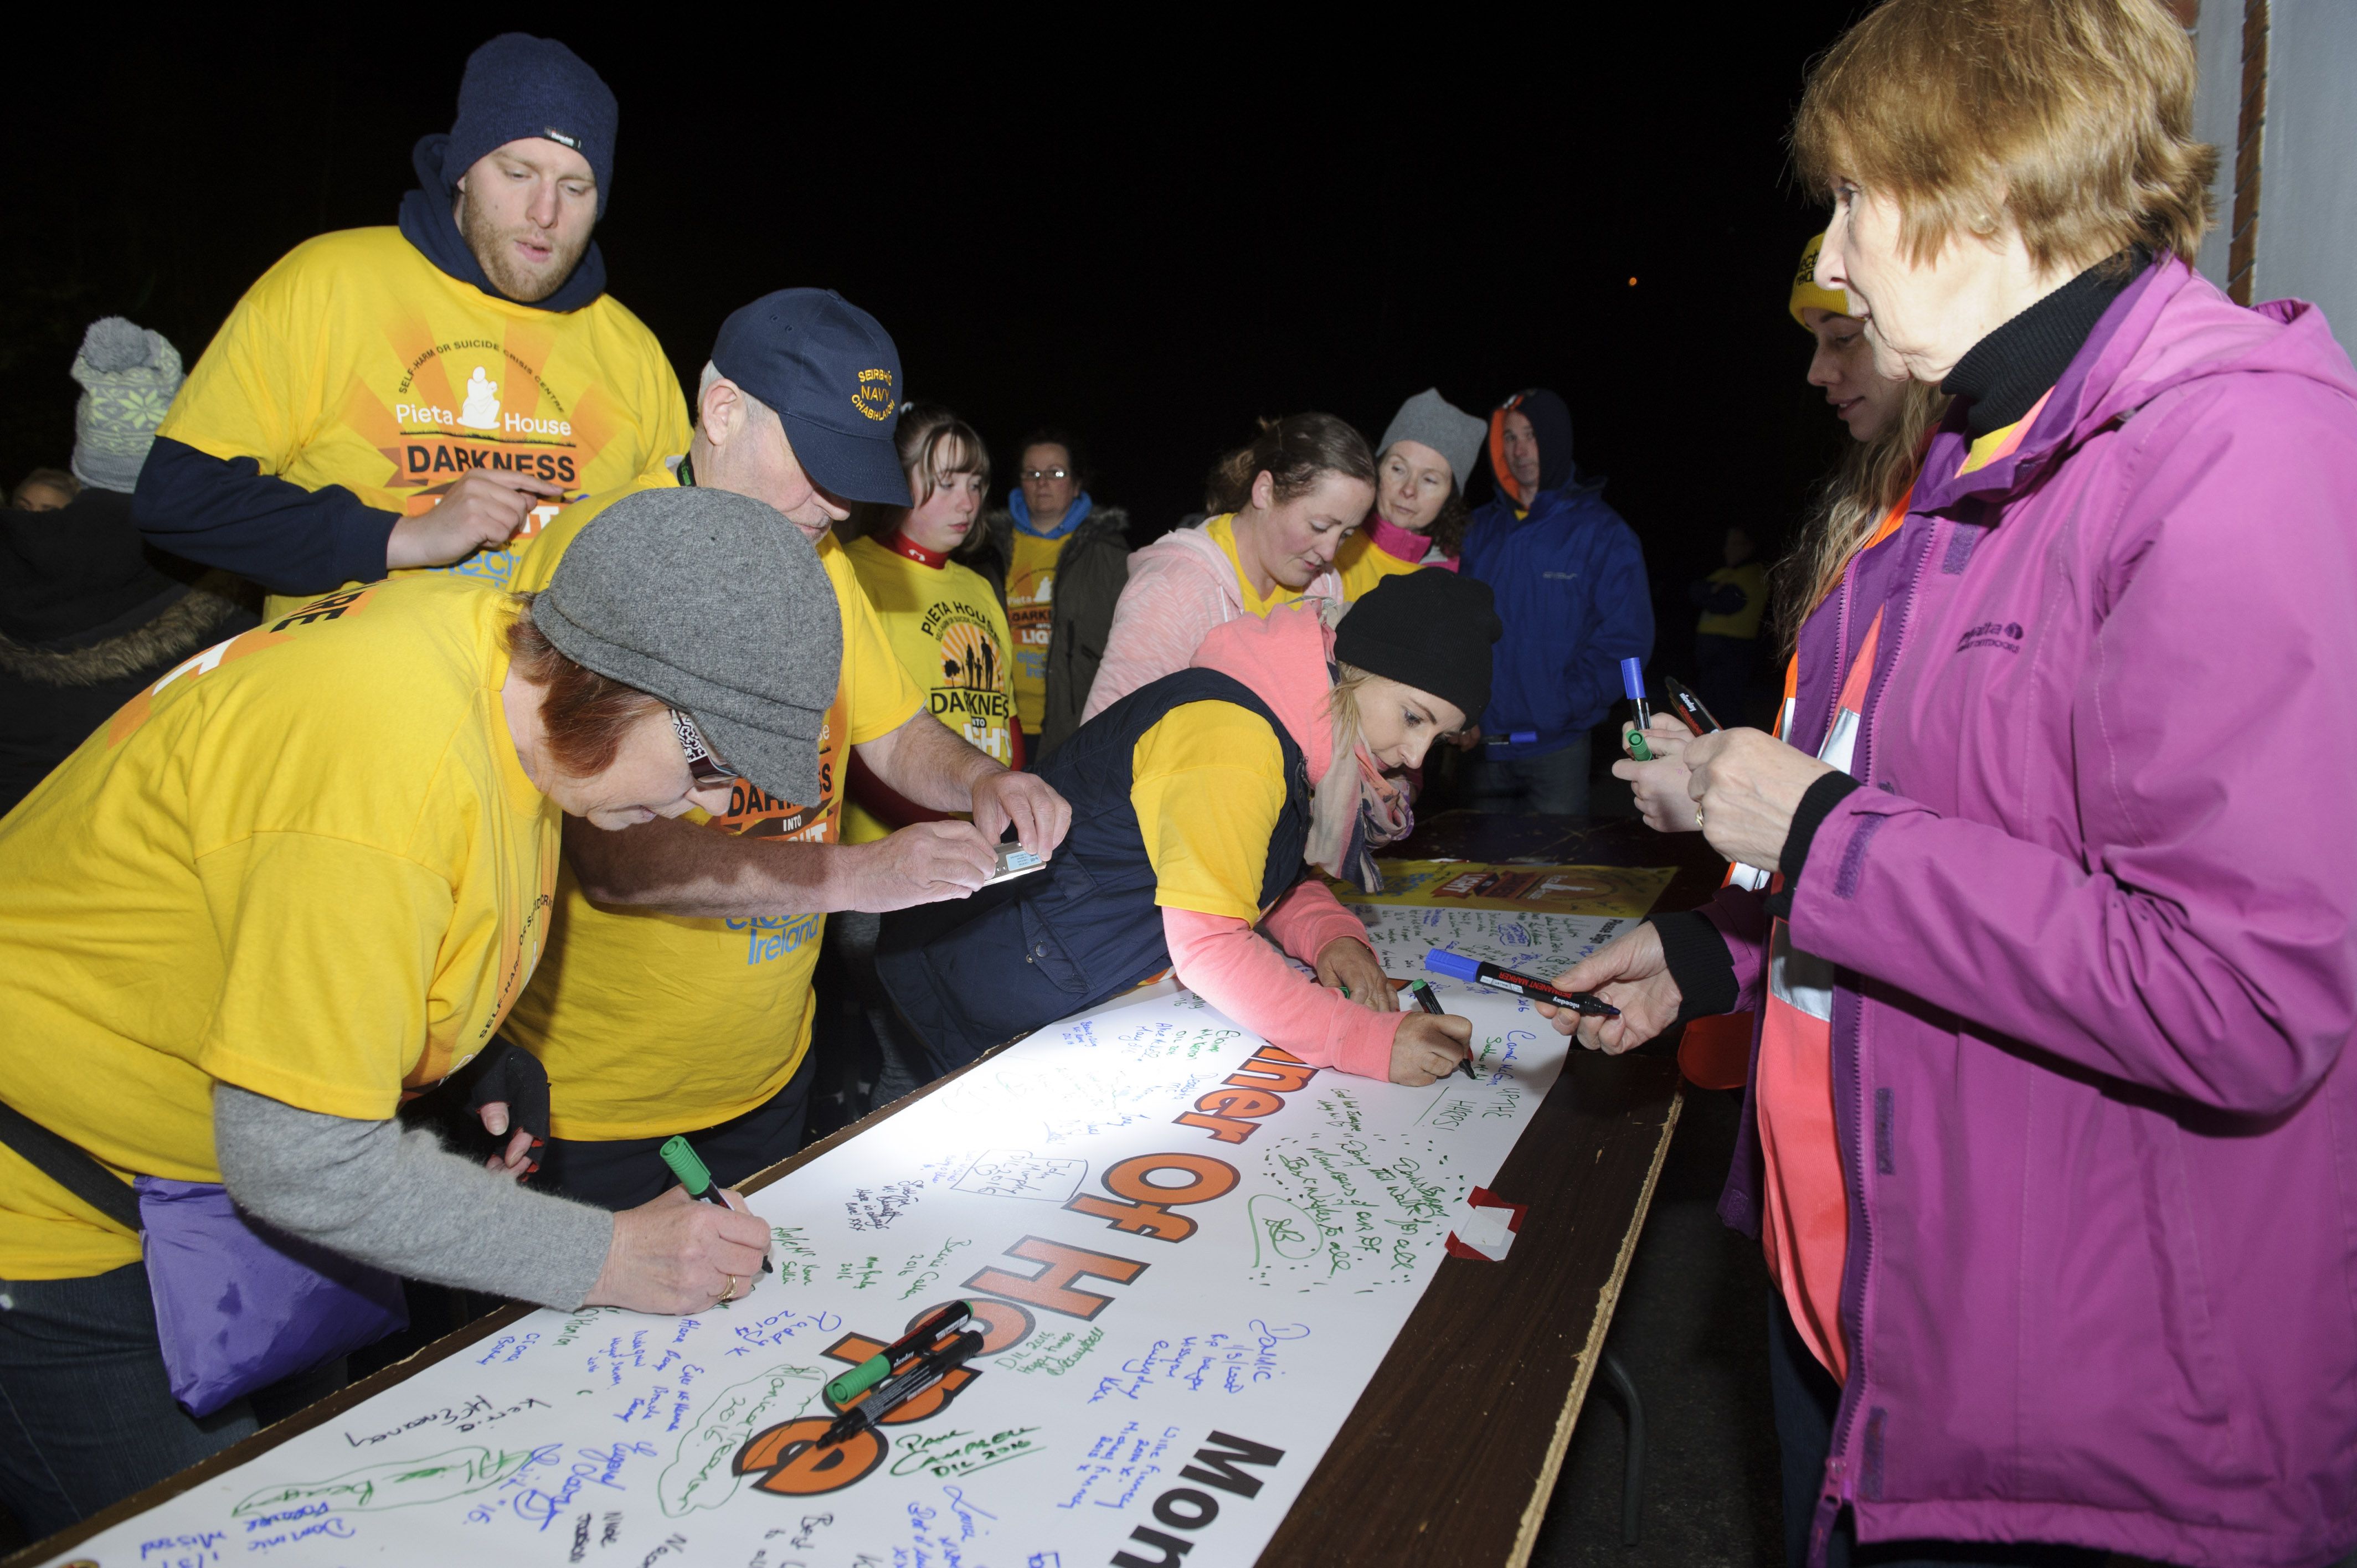 Some of the runners at the Monaghan Darkness Into Light signing a banner at the event. ©Rory Geary/The Northern Standard